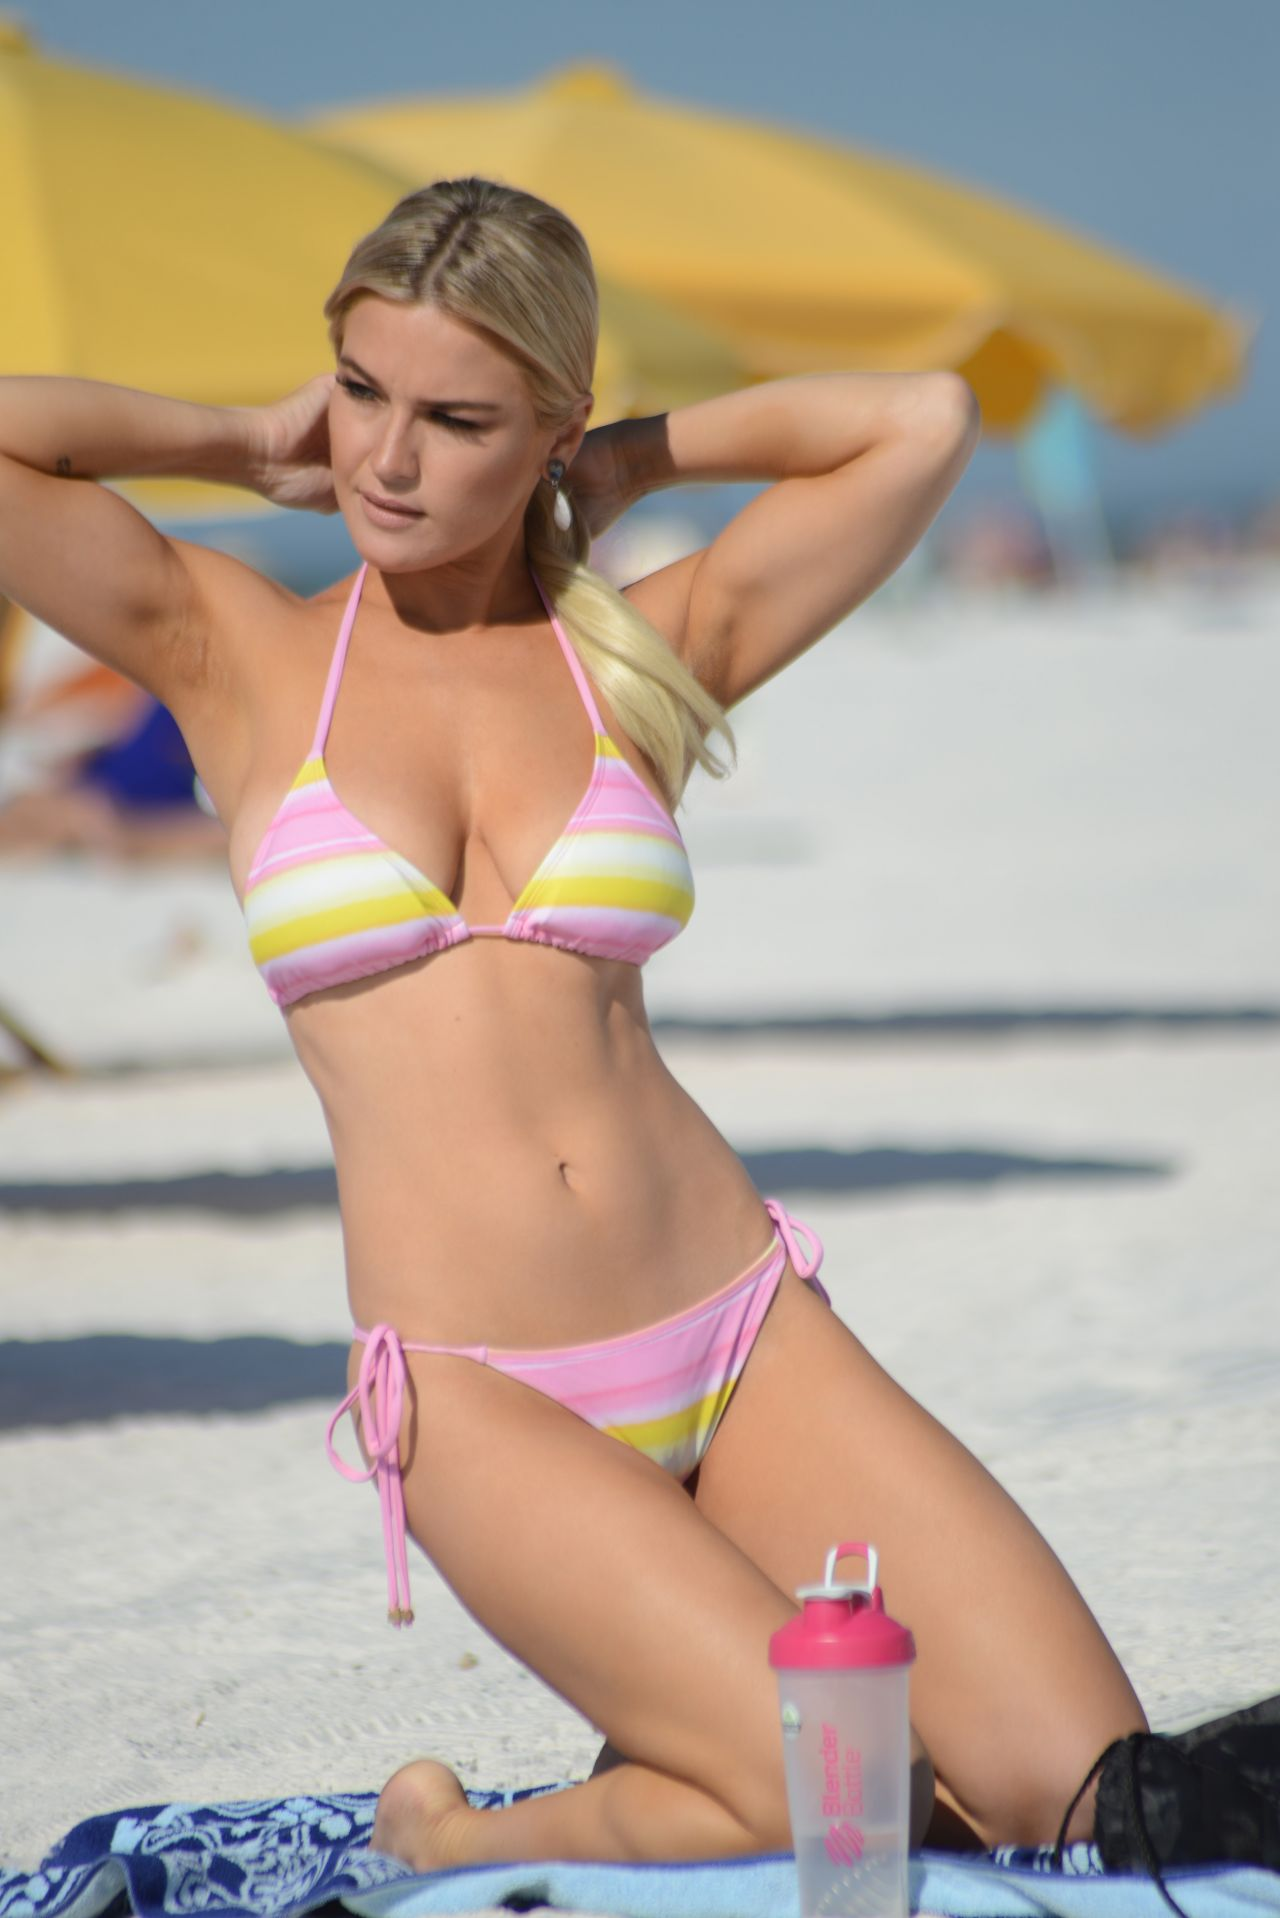 Lauren Hubbard in Bikini on the beach in Miami Pic 8 of 35